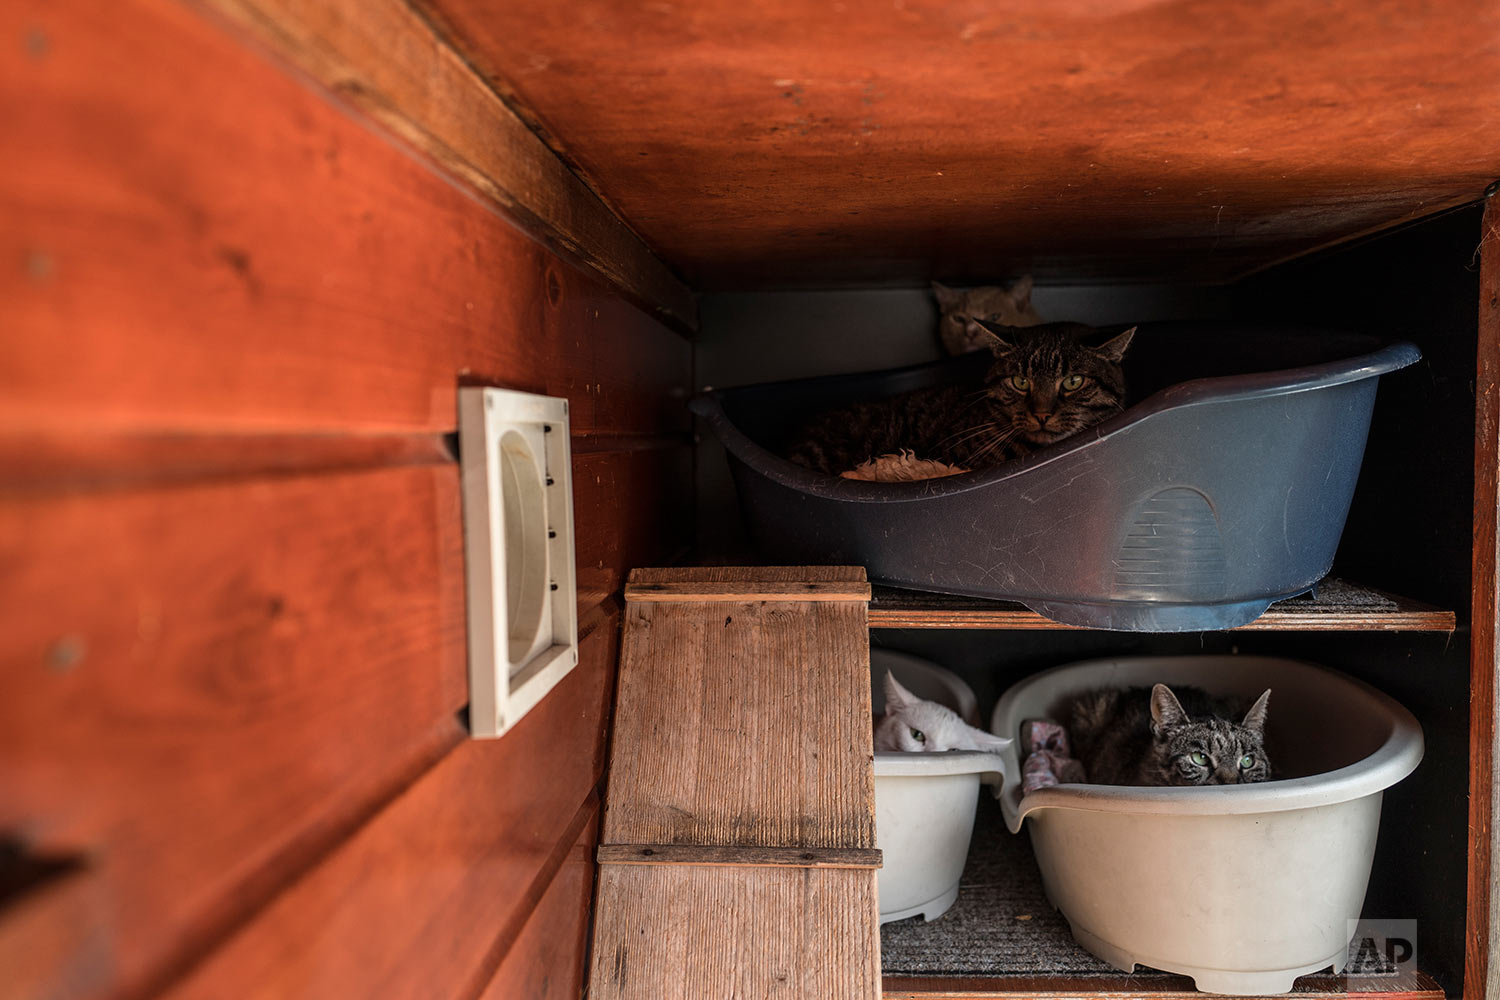 In this Wednesday, Aug. 2, 2017 photo, a group of cats sits in baskets on the Catboat shelter in Amsterdam, Netherlands. (AP Photo/Muhammed Muheisen)